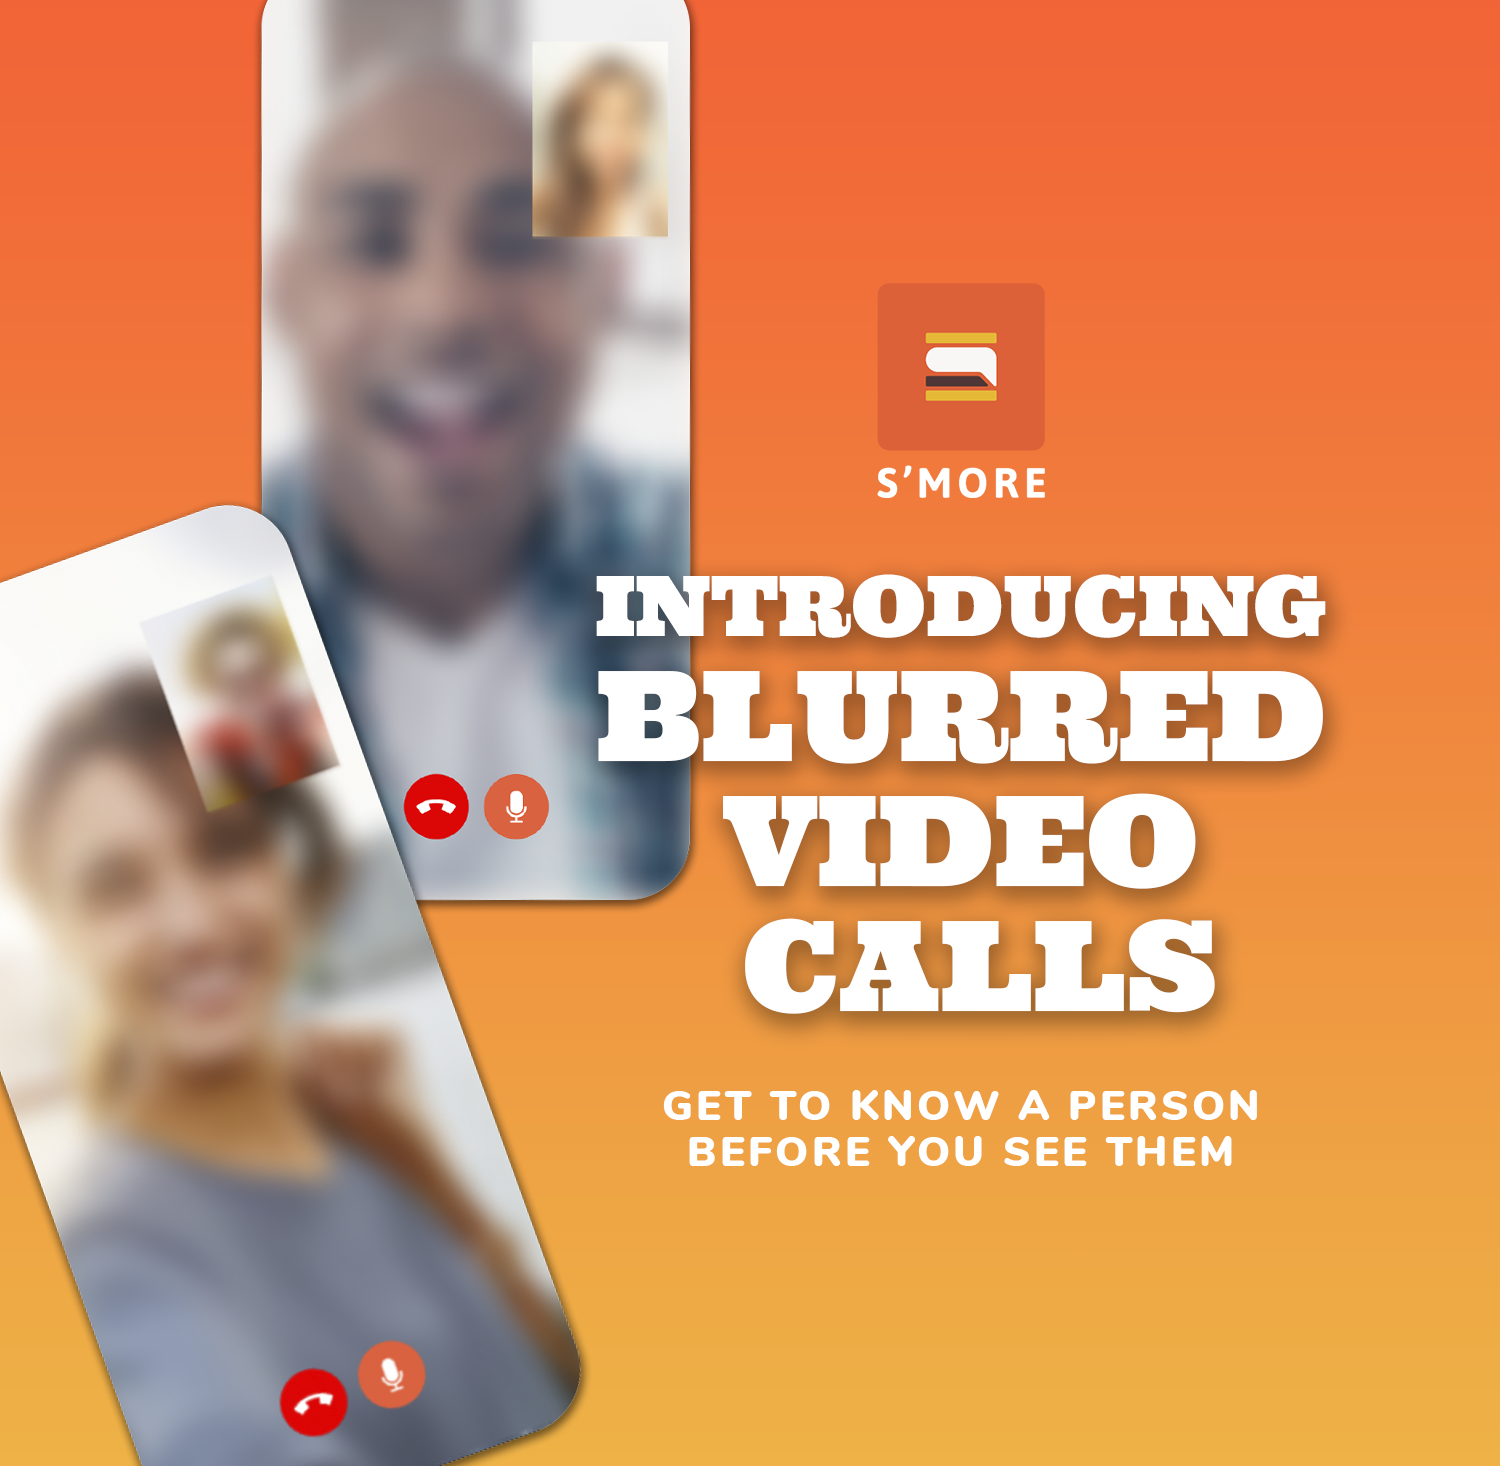 S'More Introduces Blurred Video Calls Ahead of LA Launch